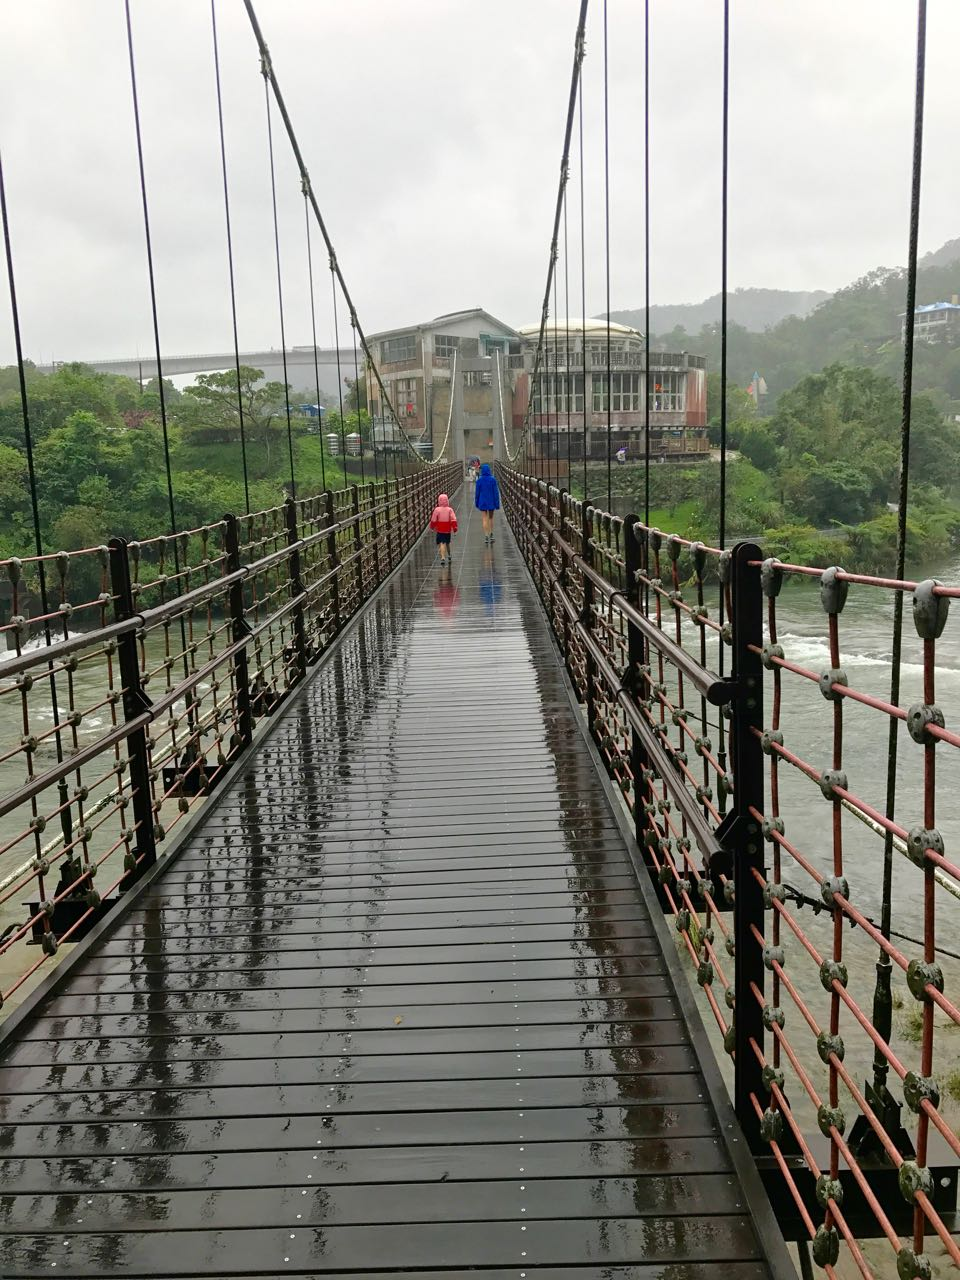 Autumn and Eden cross the rope bridge suspended over the Keelung River.